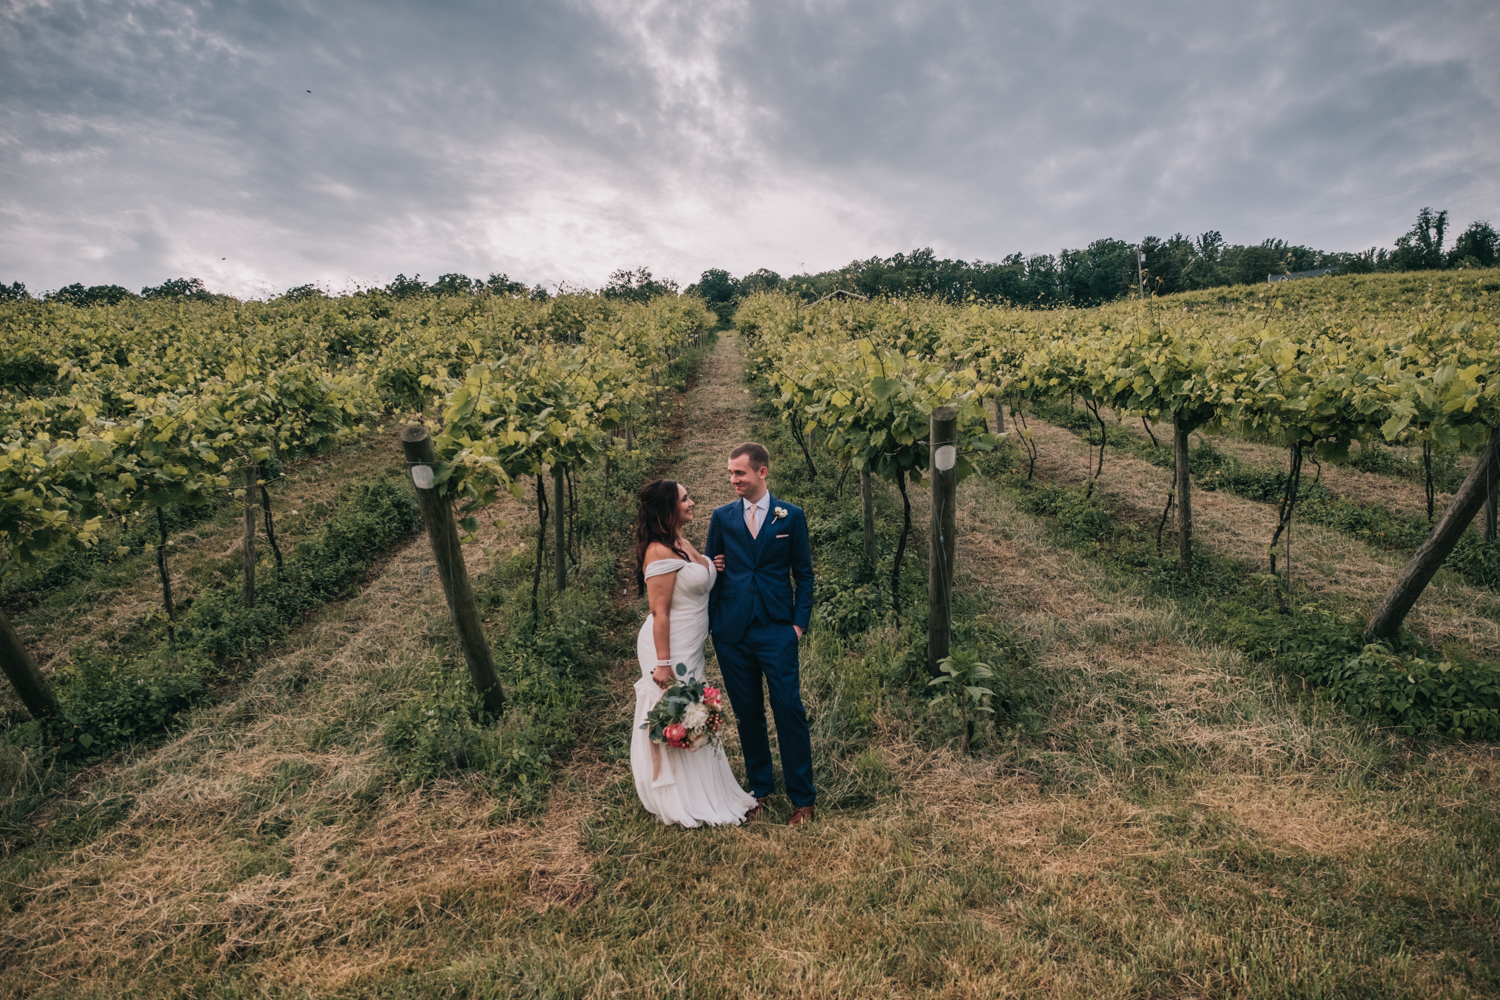 wedding portraits at bluemont vineyard virginia loudoun county